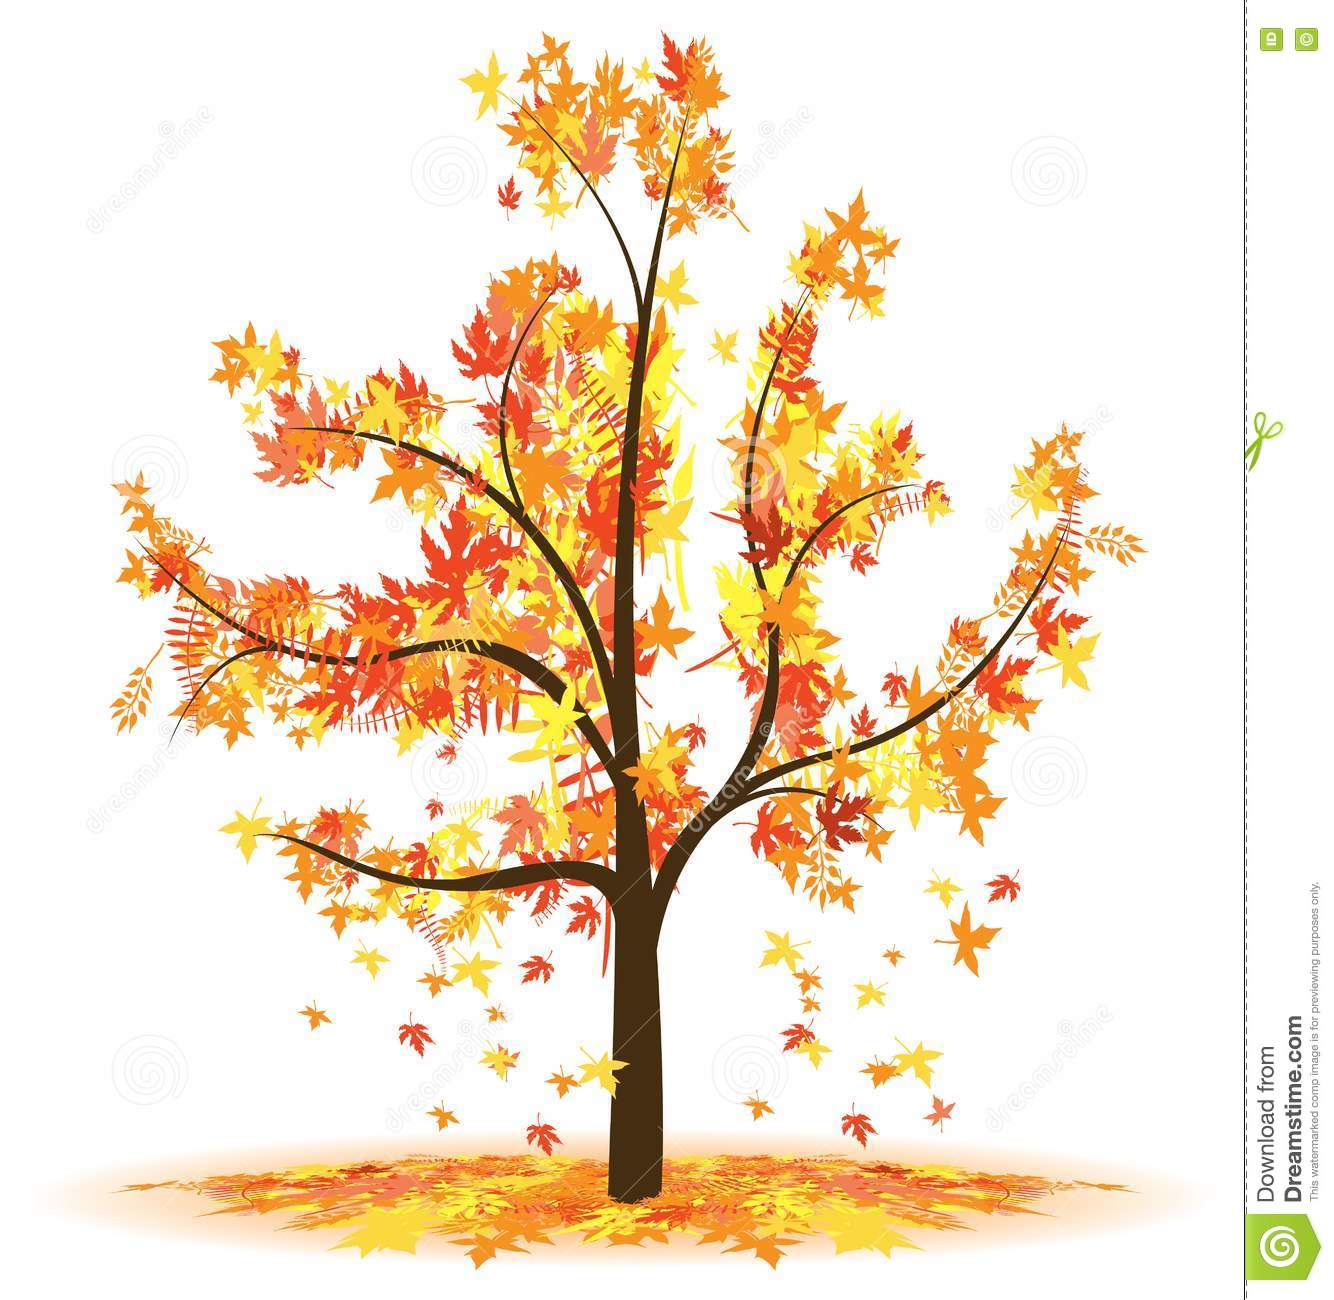 Autumn Tree Royalty Free Stock Photography - Image: 17822837